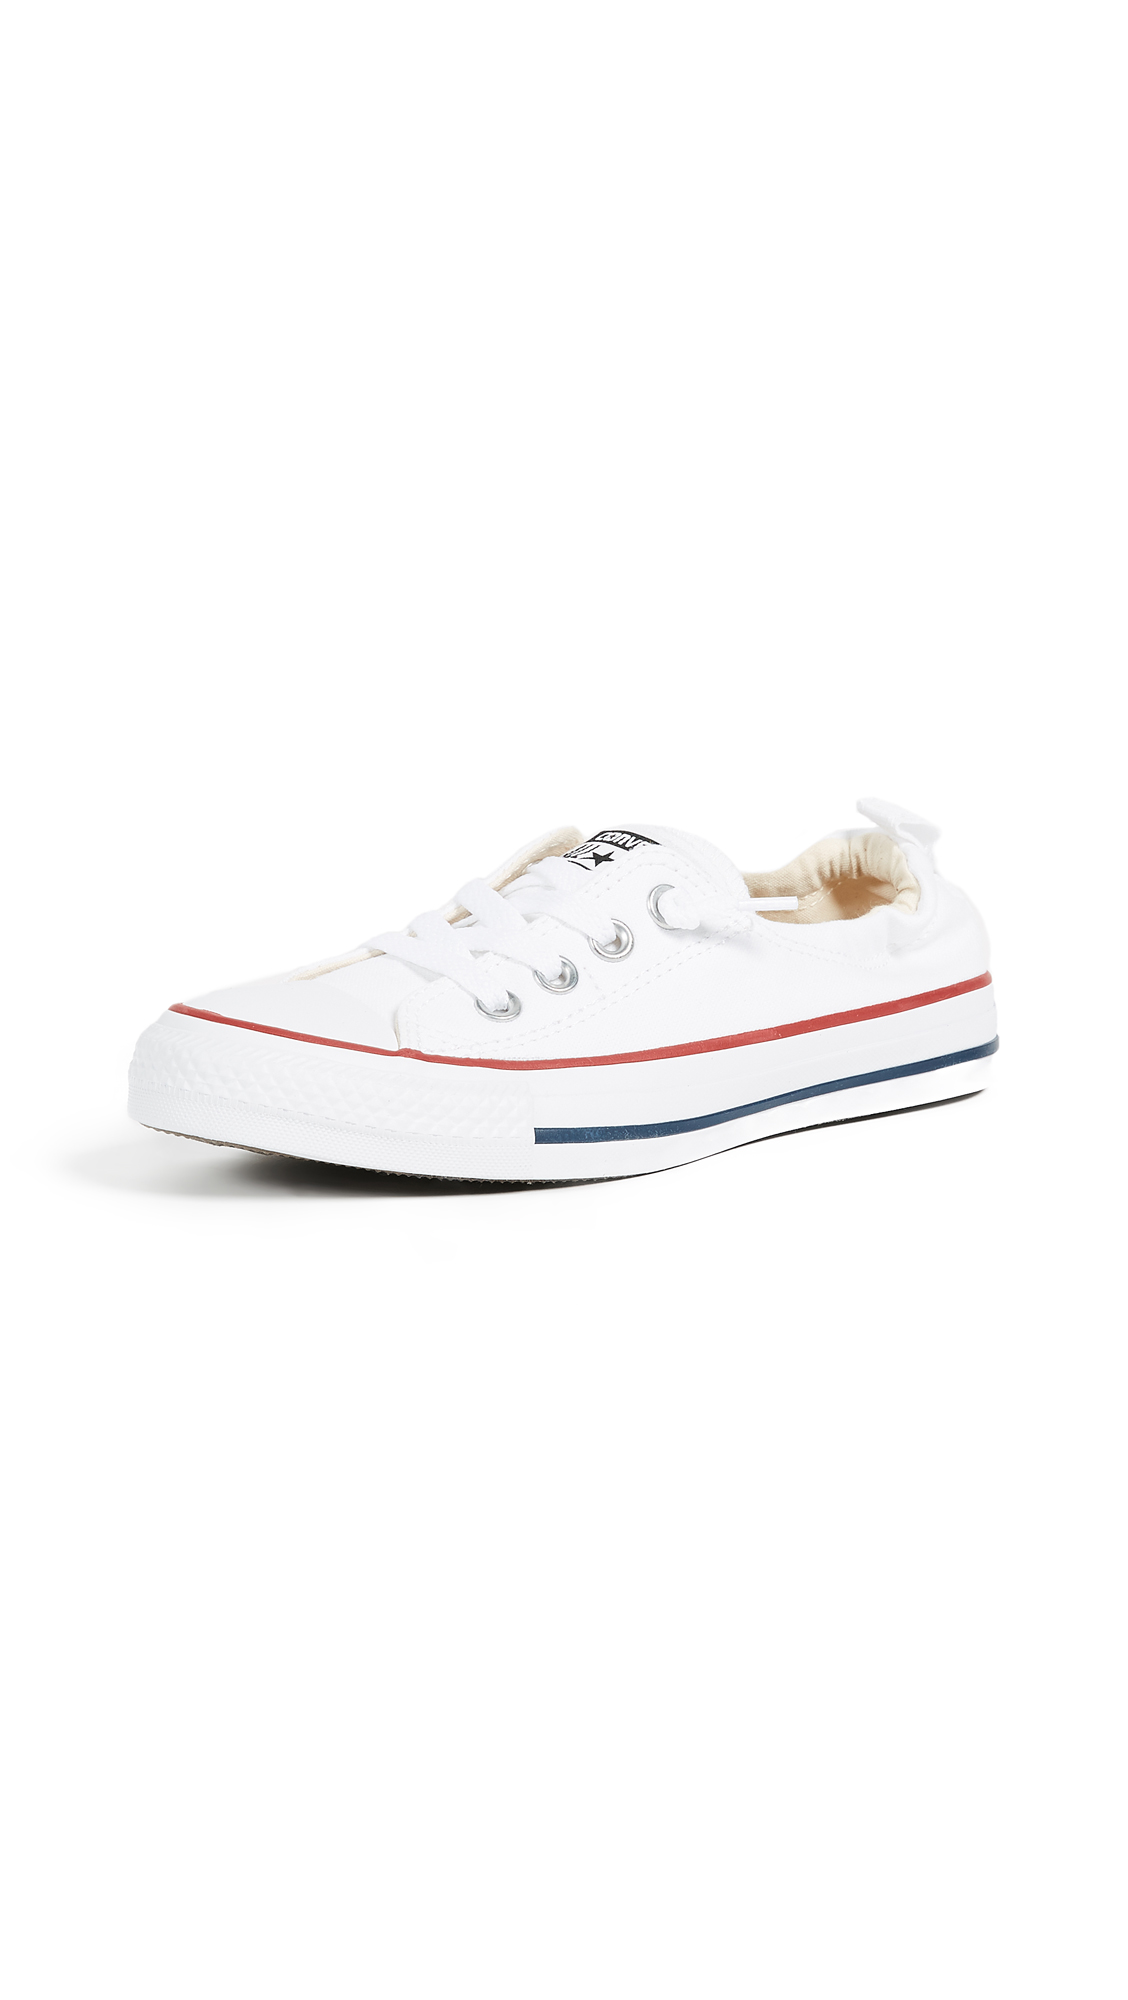 Converse Chuck Taylor All Star Shoreline Slip On Sneakers - White